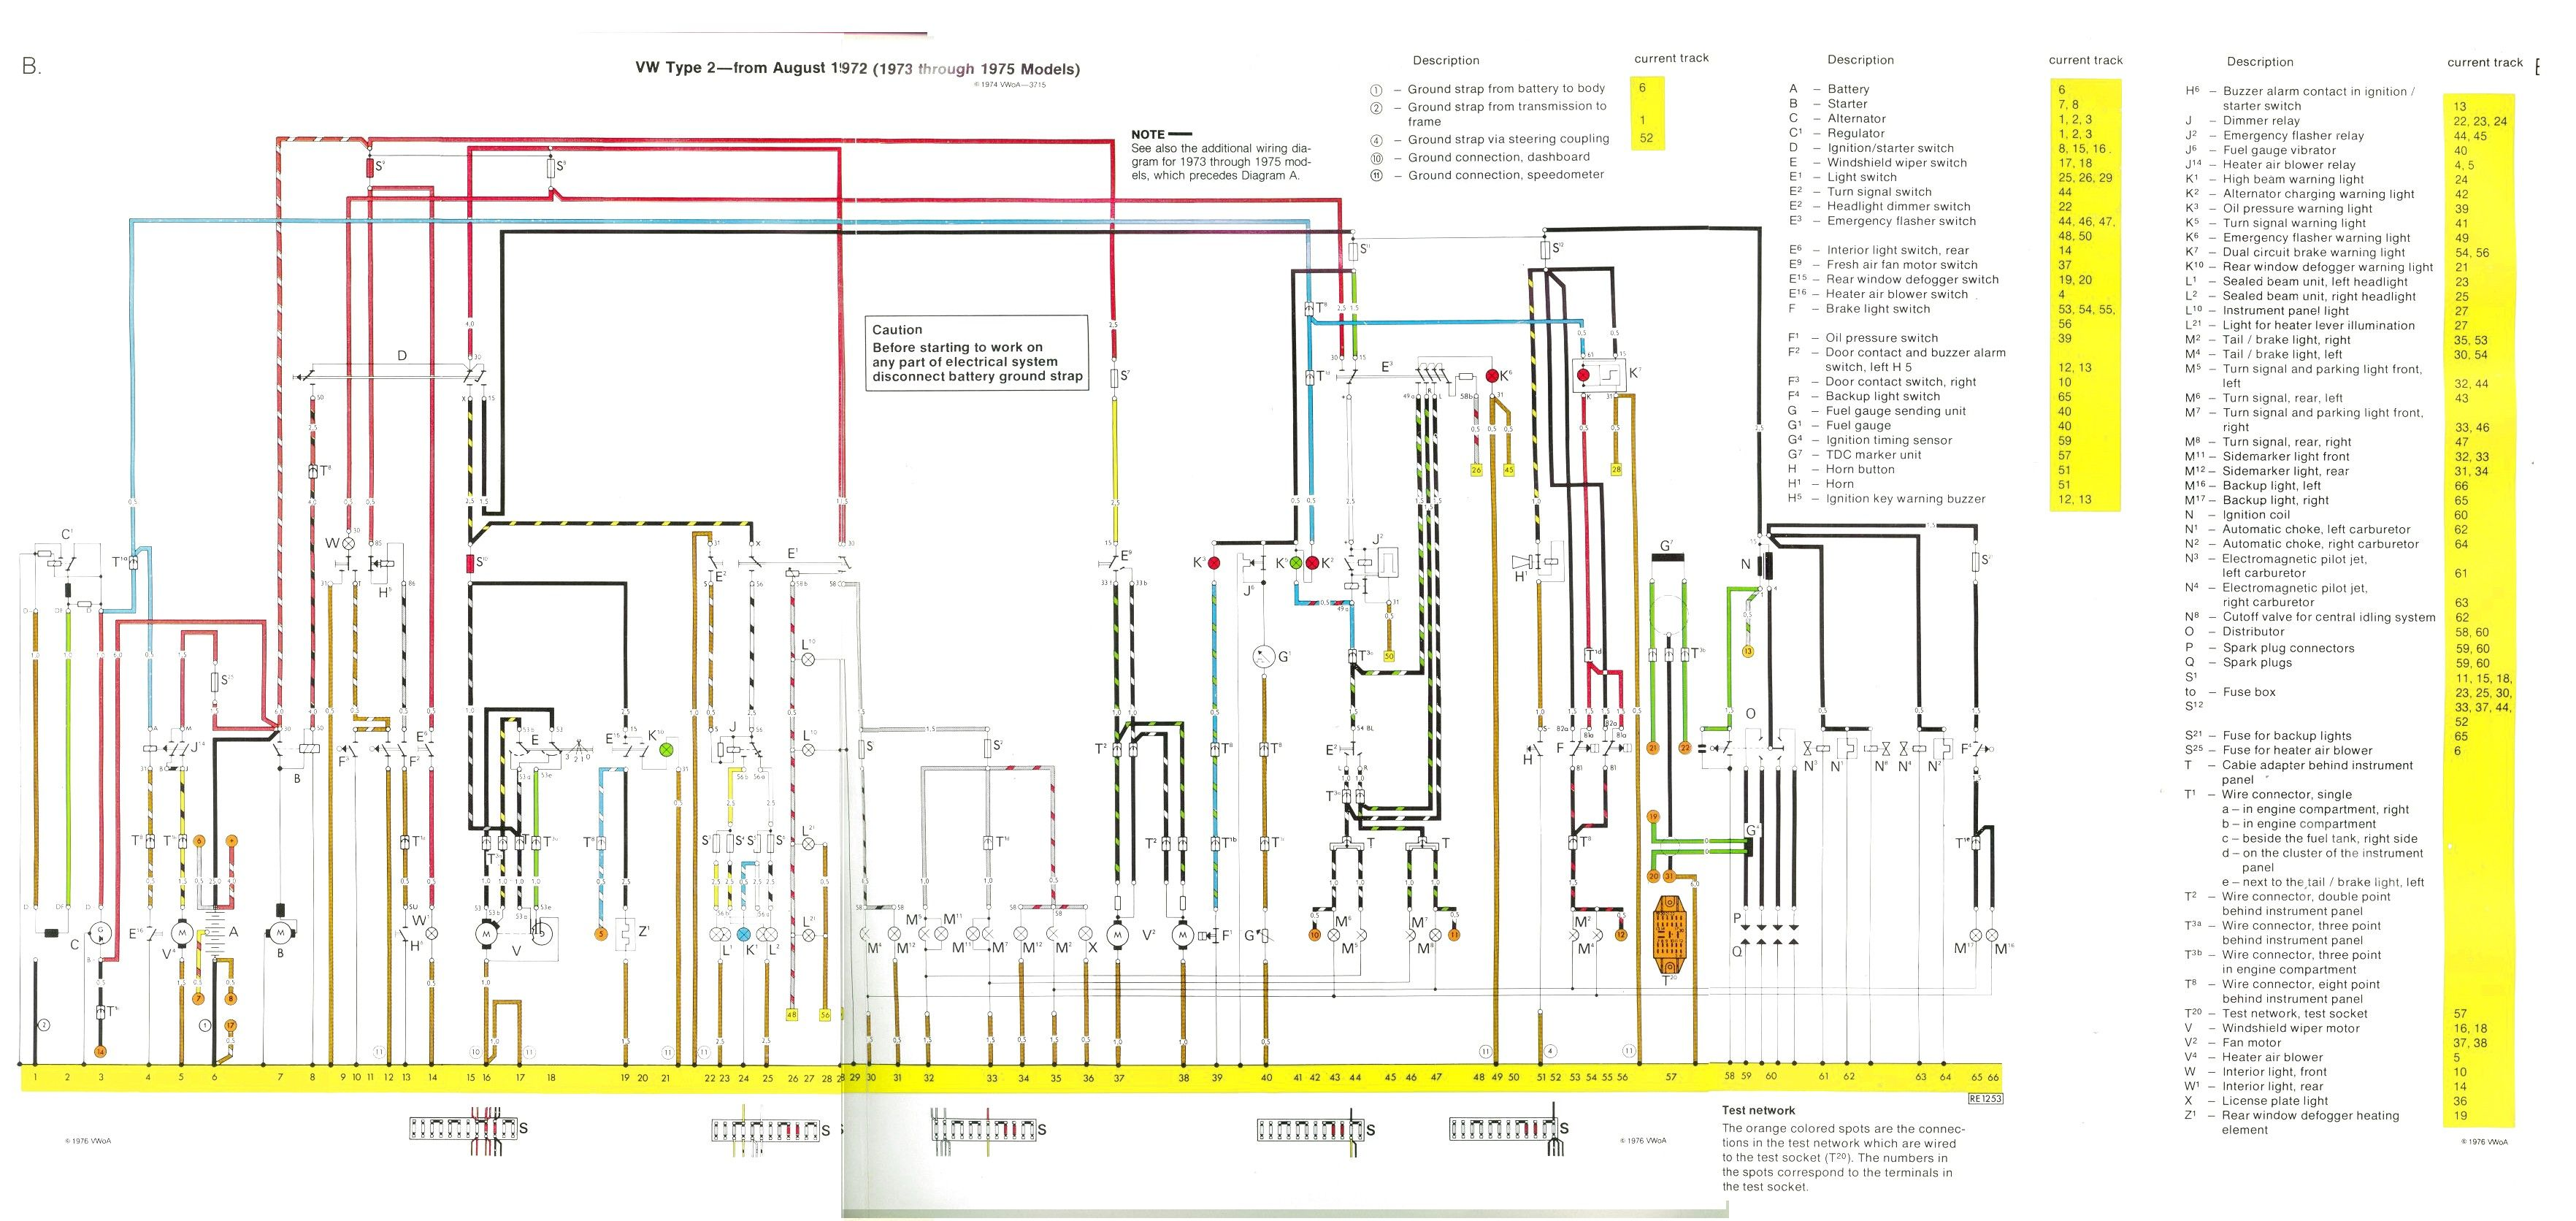 Pin by Mike Howe on wiring | Diagram, Vw bus, Wire